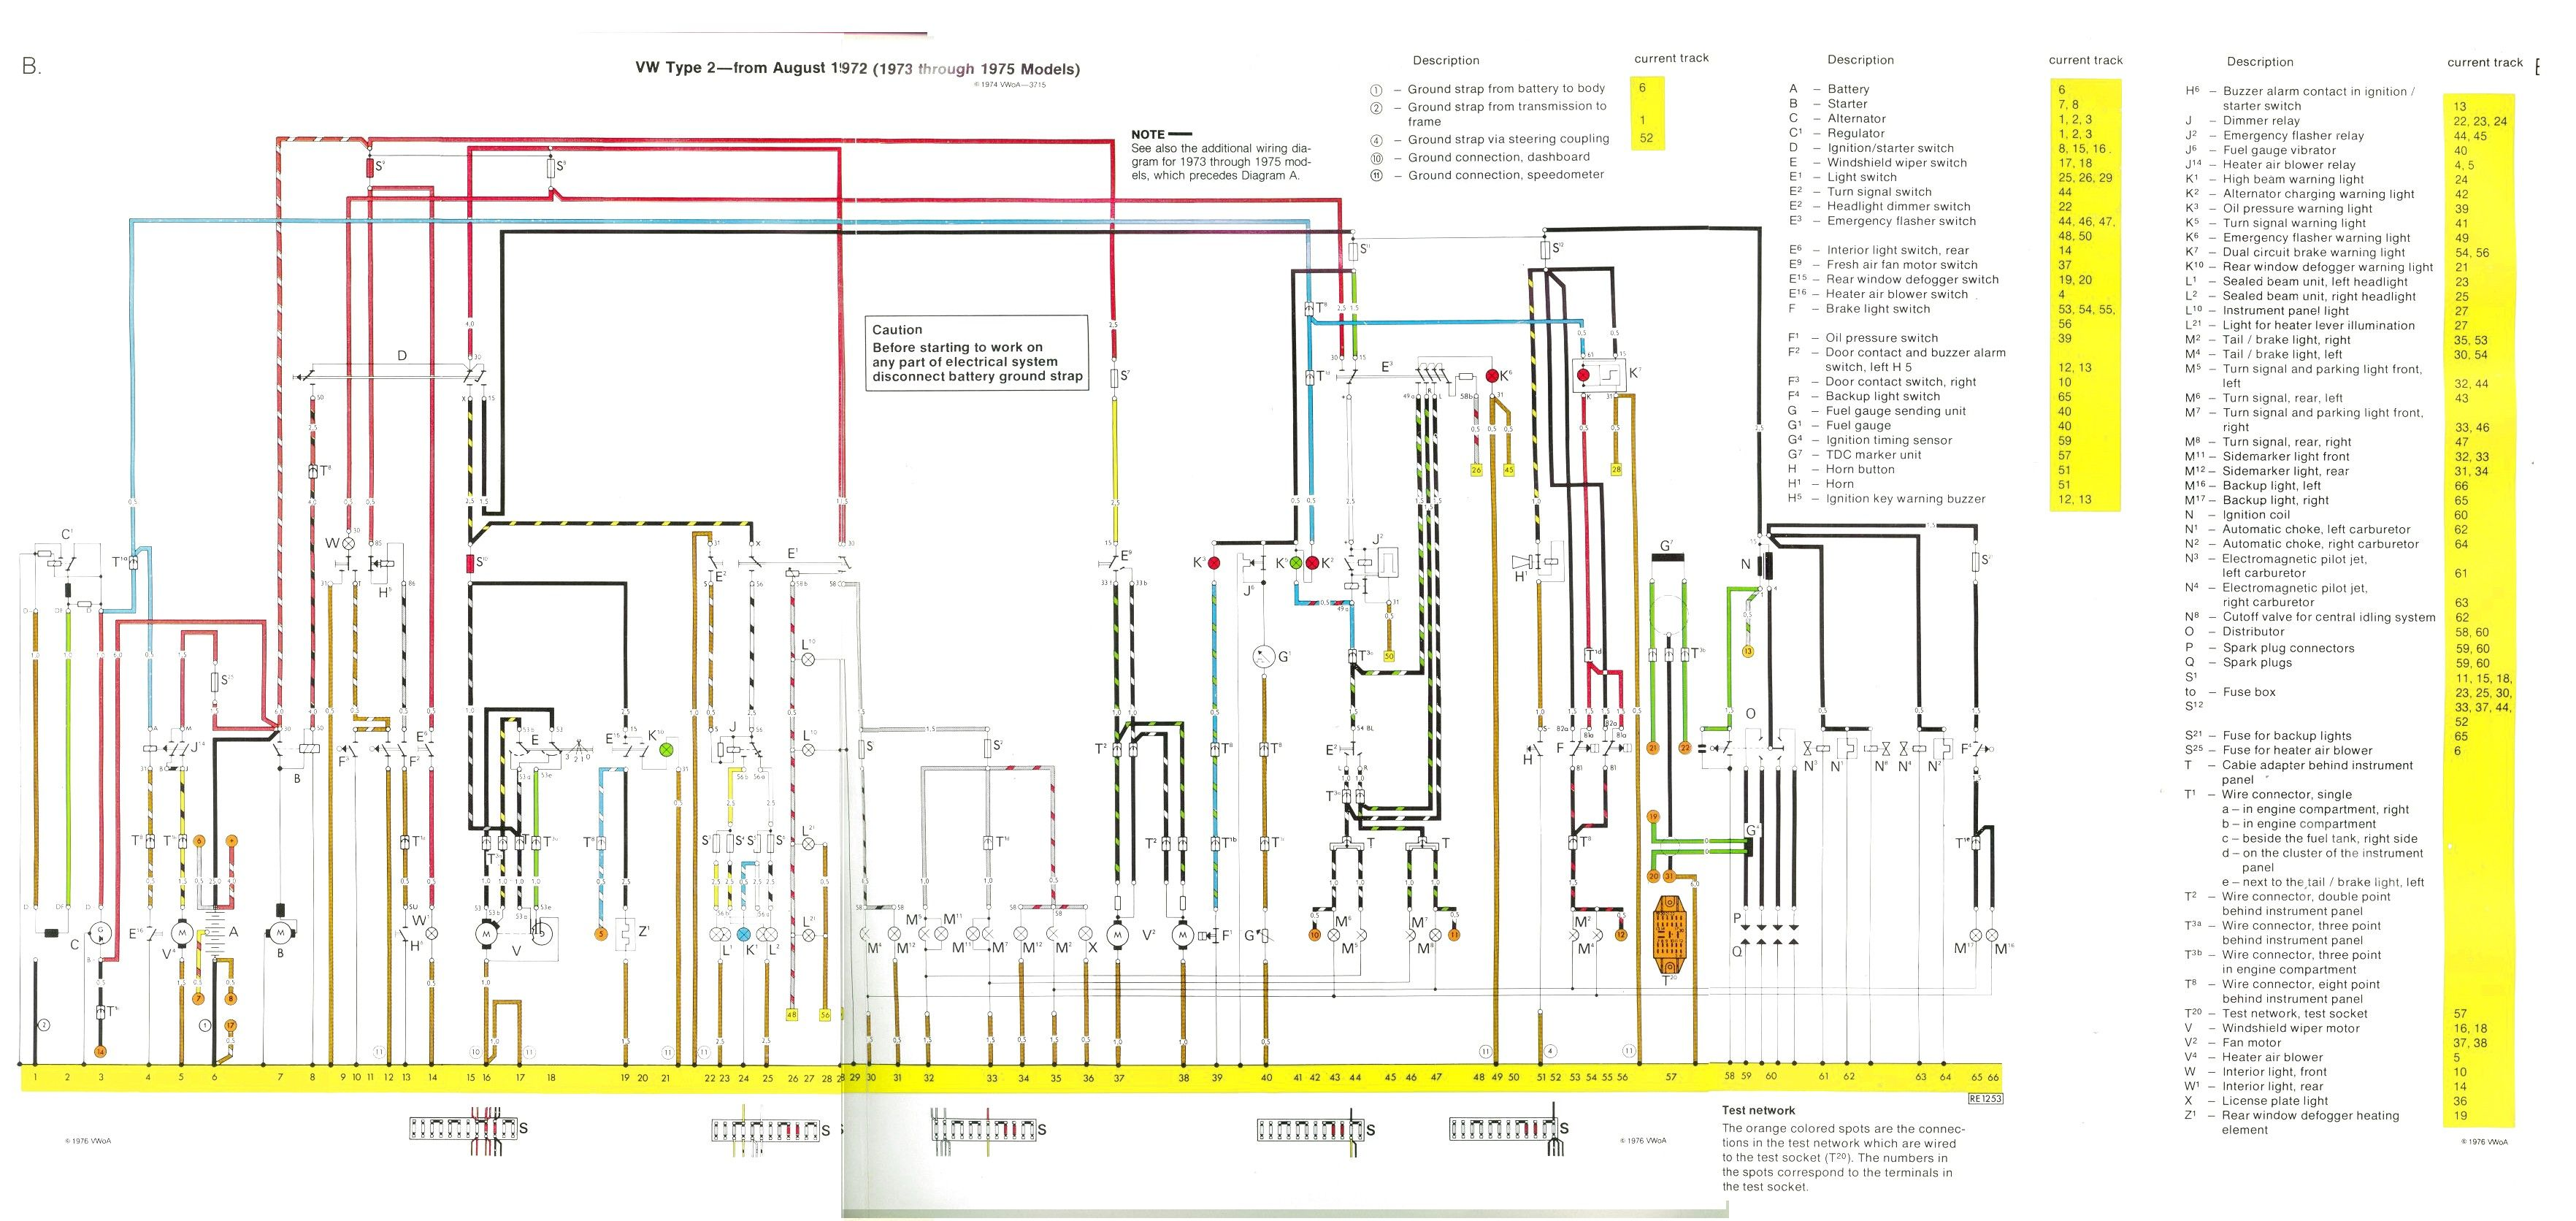 Pin by Mike Howe on wiring | Diagram, Vw bus, Wire